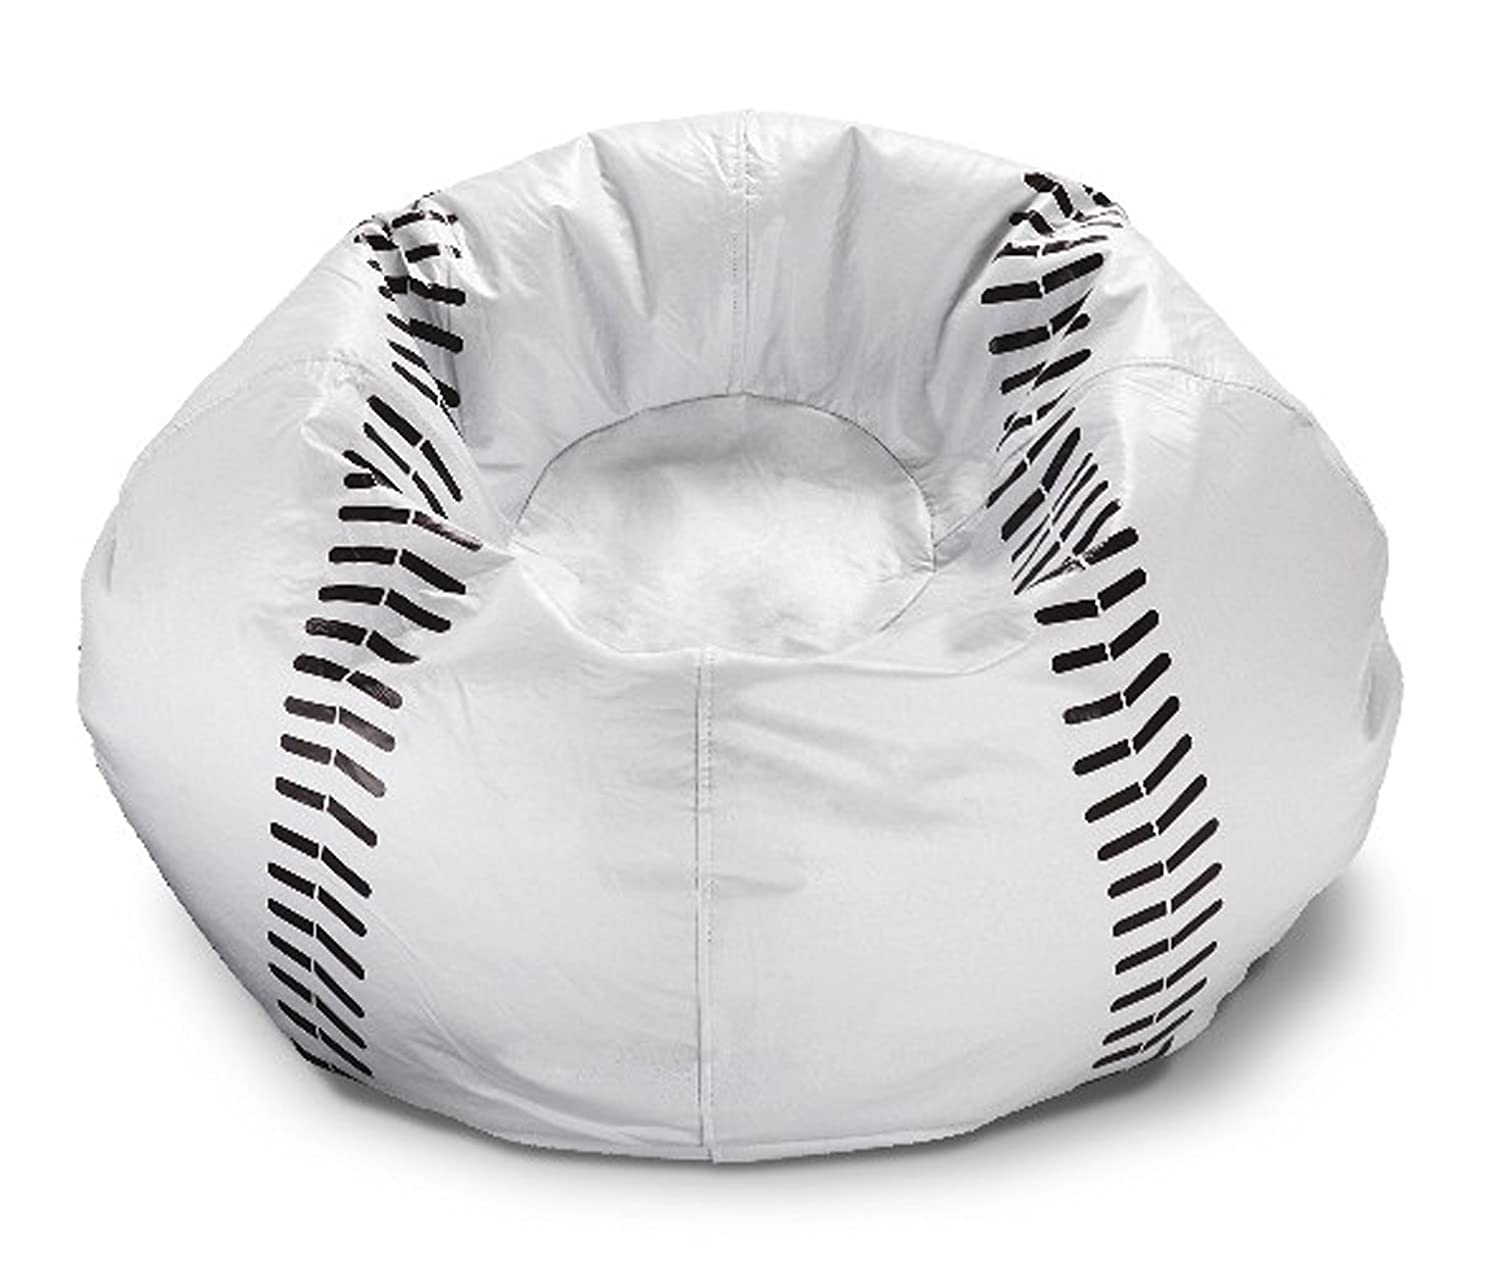 Ace Bayou Baseball Round Small Bean Bag